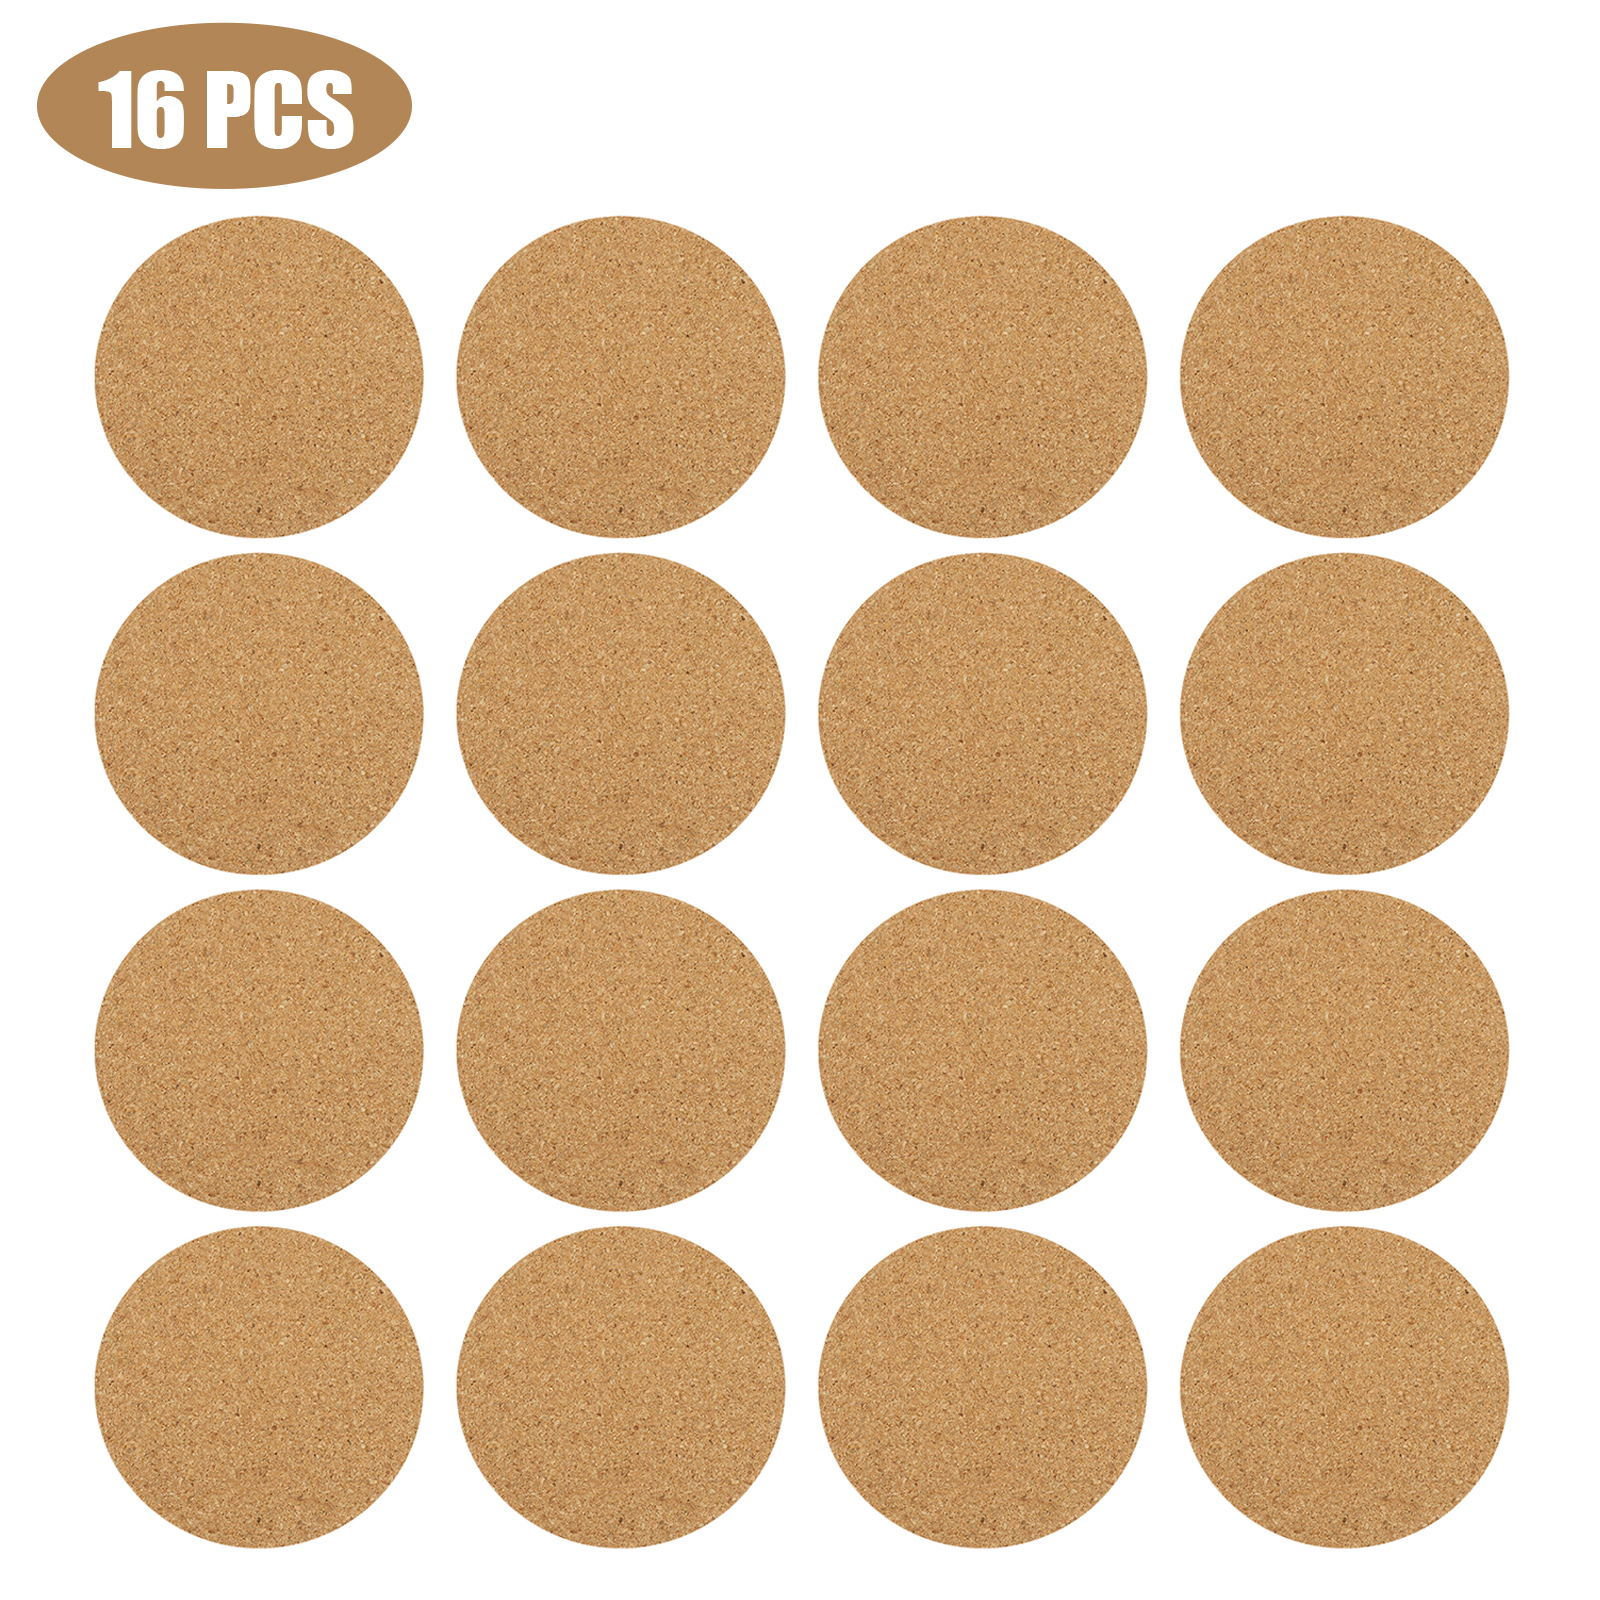 8-16pcs-Cork-Drink-Coasters-Tea-Coffee-Absorbent-Round-Cup-Mat-Table-Decor-Home thumbnail 9